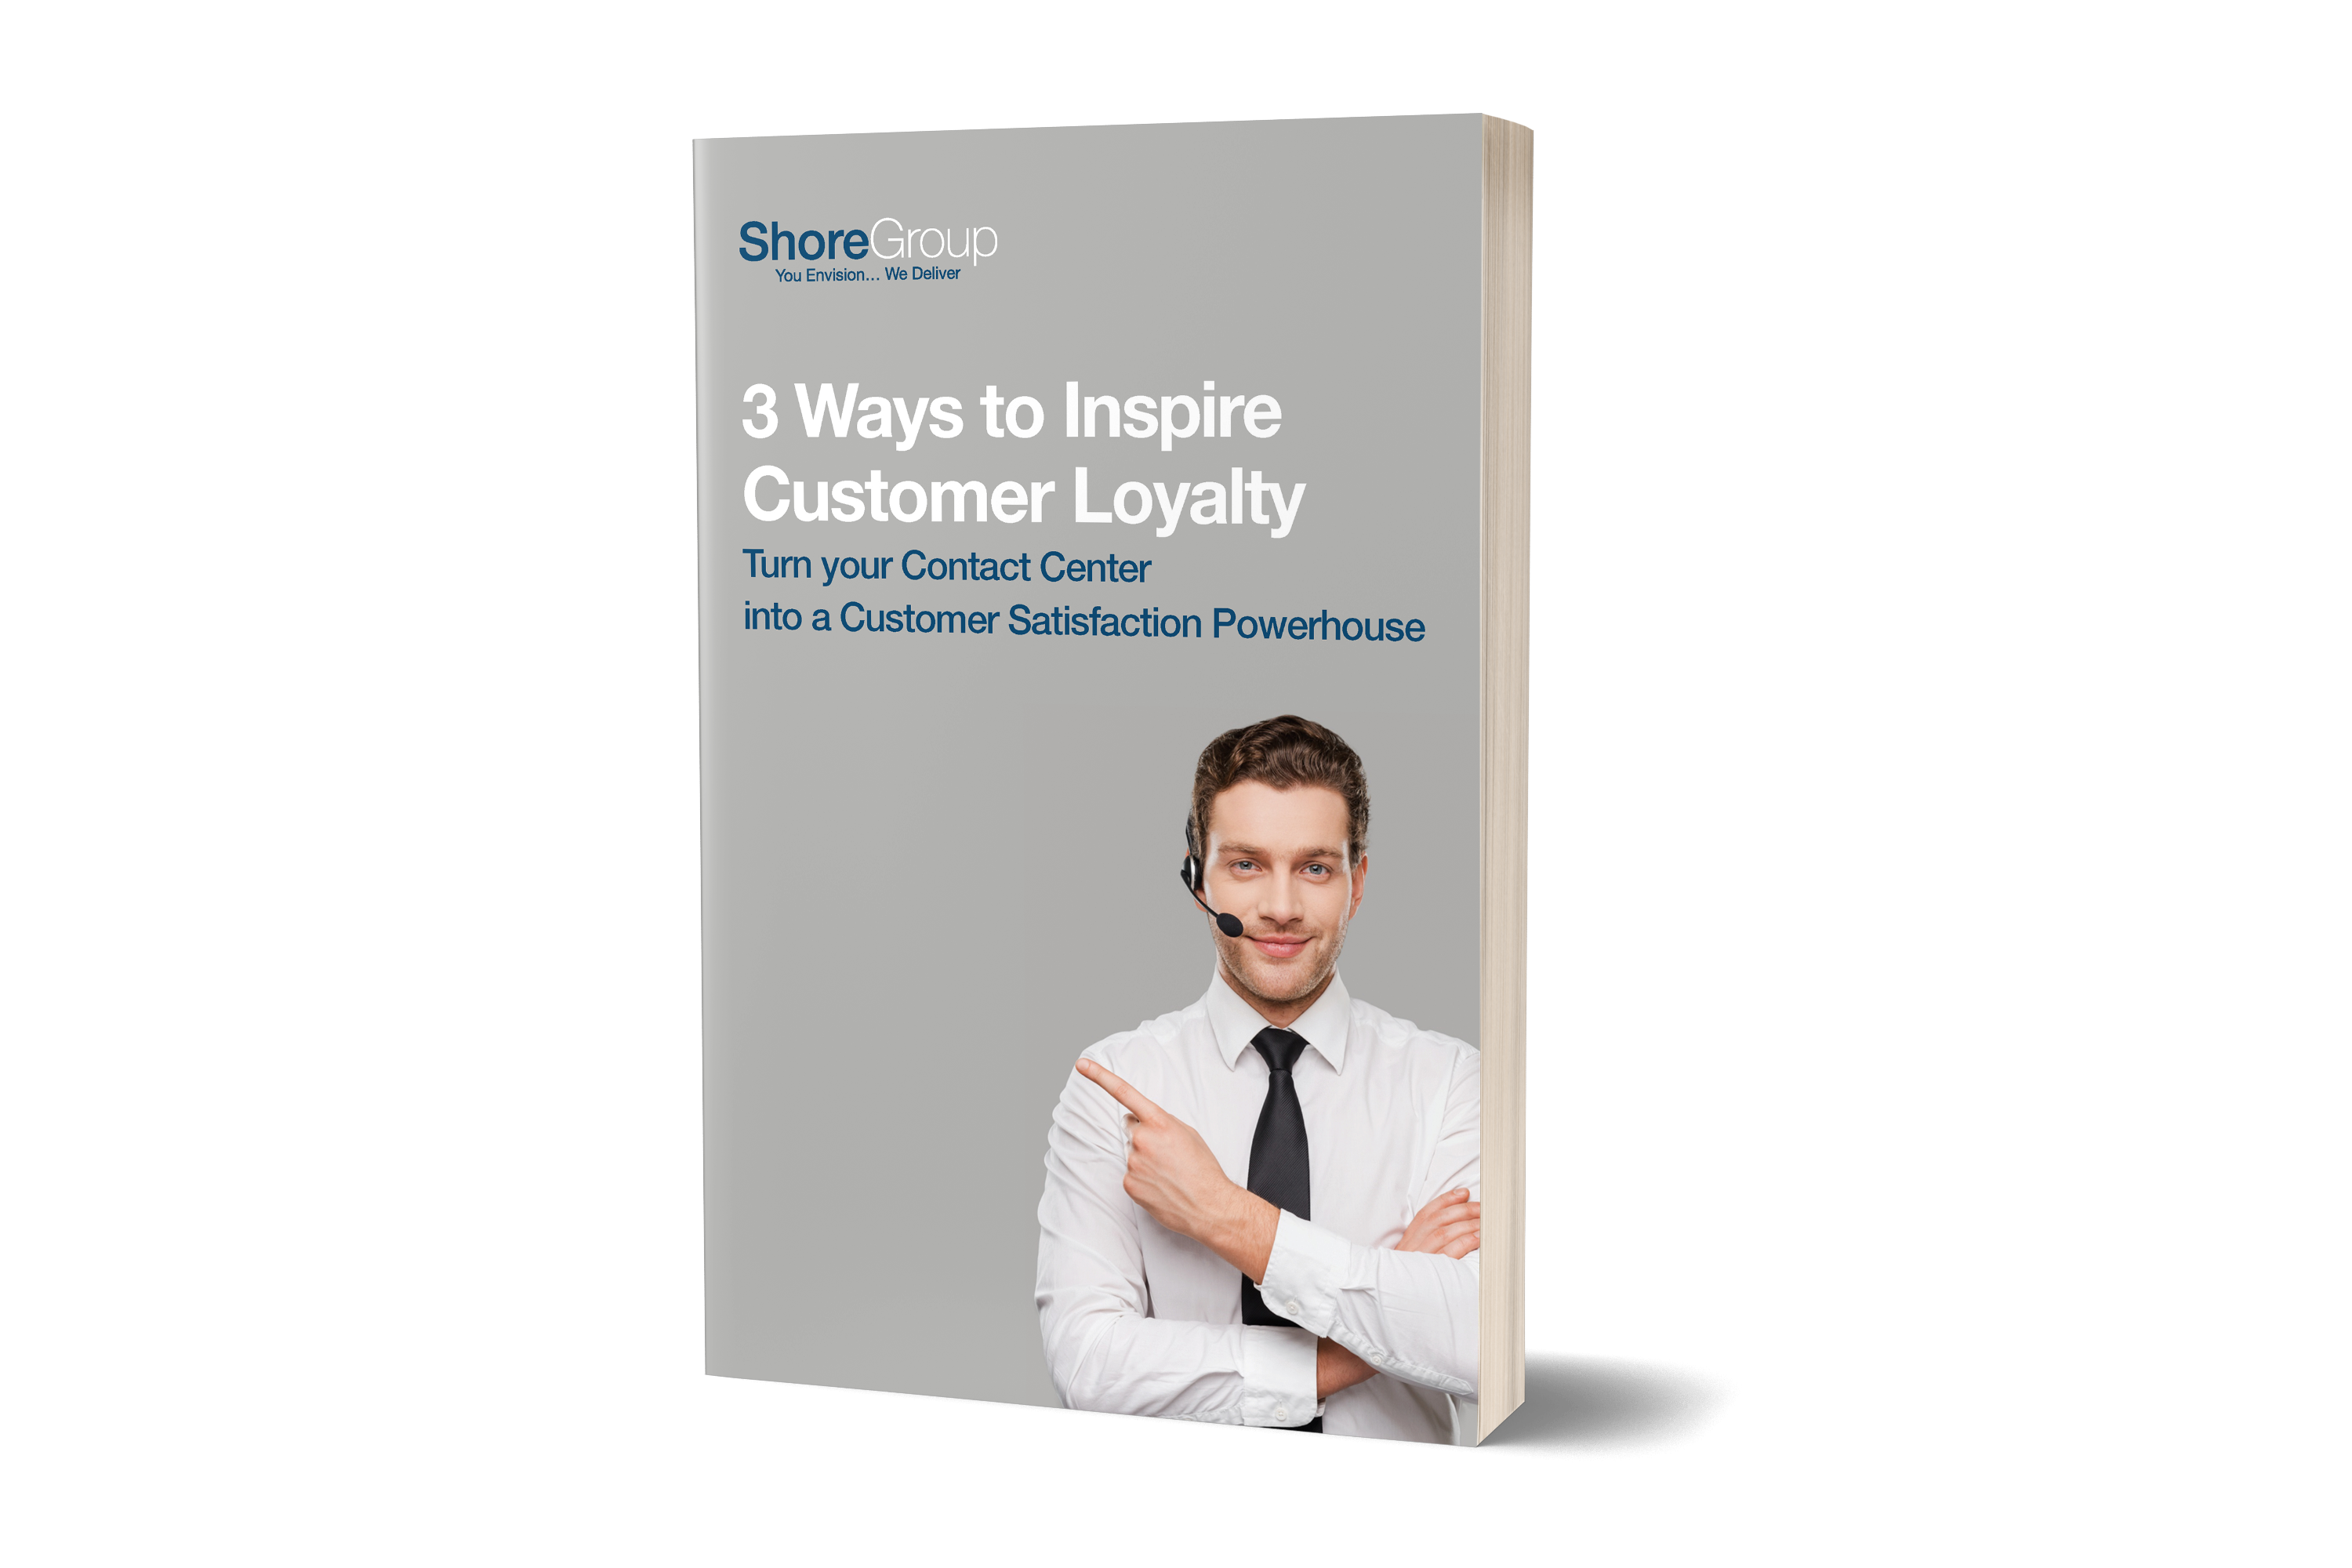 Three_Ways_to_Inspire_Customer_Loyalty_3D_Image.png